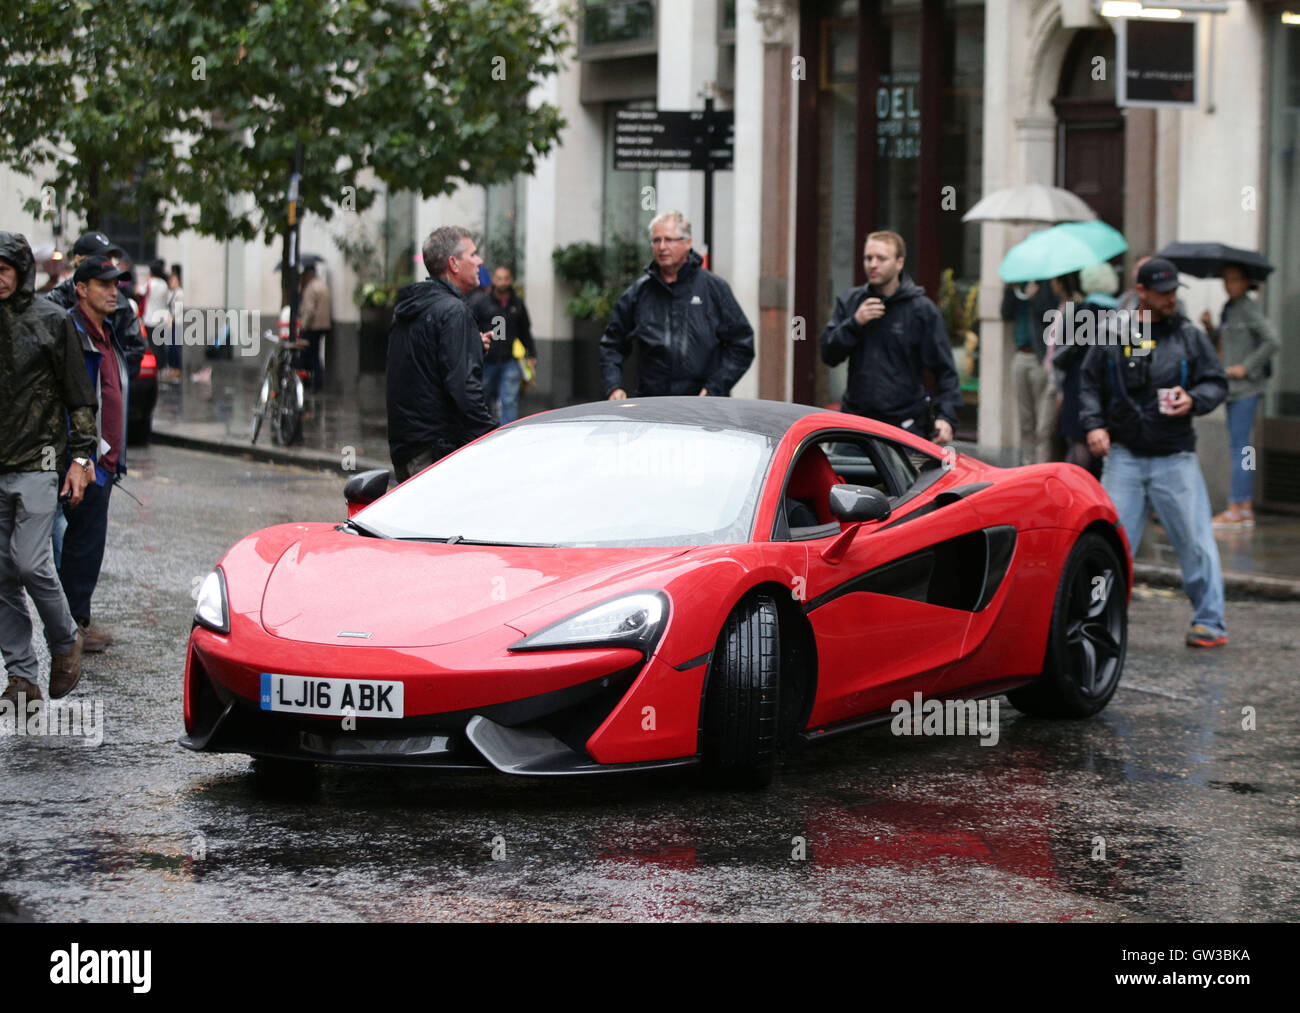 Nice A McLaren Sports Car During Filming Of The Film Transformers: The Last  Knight, In The City Of London.